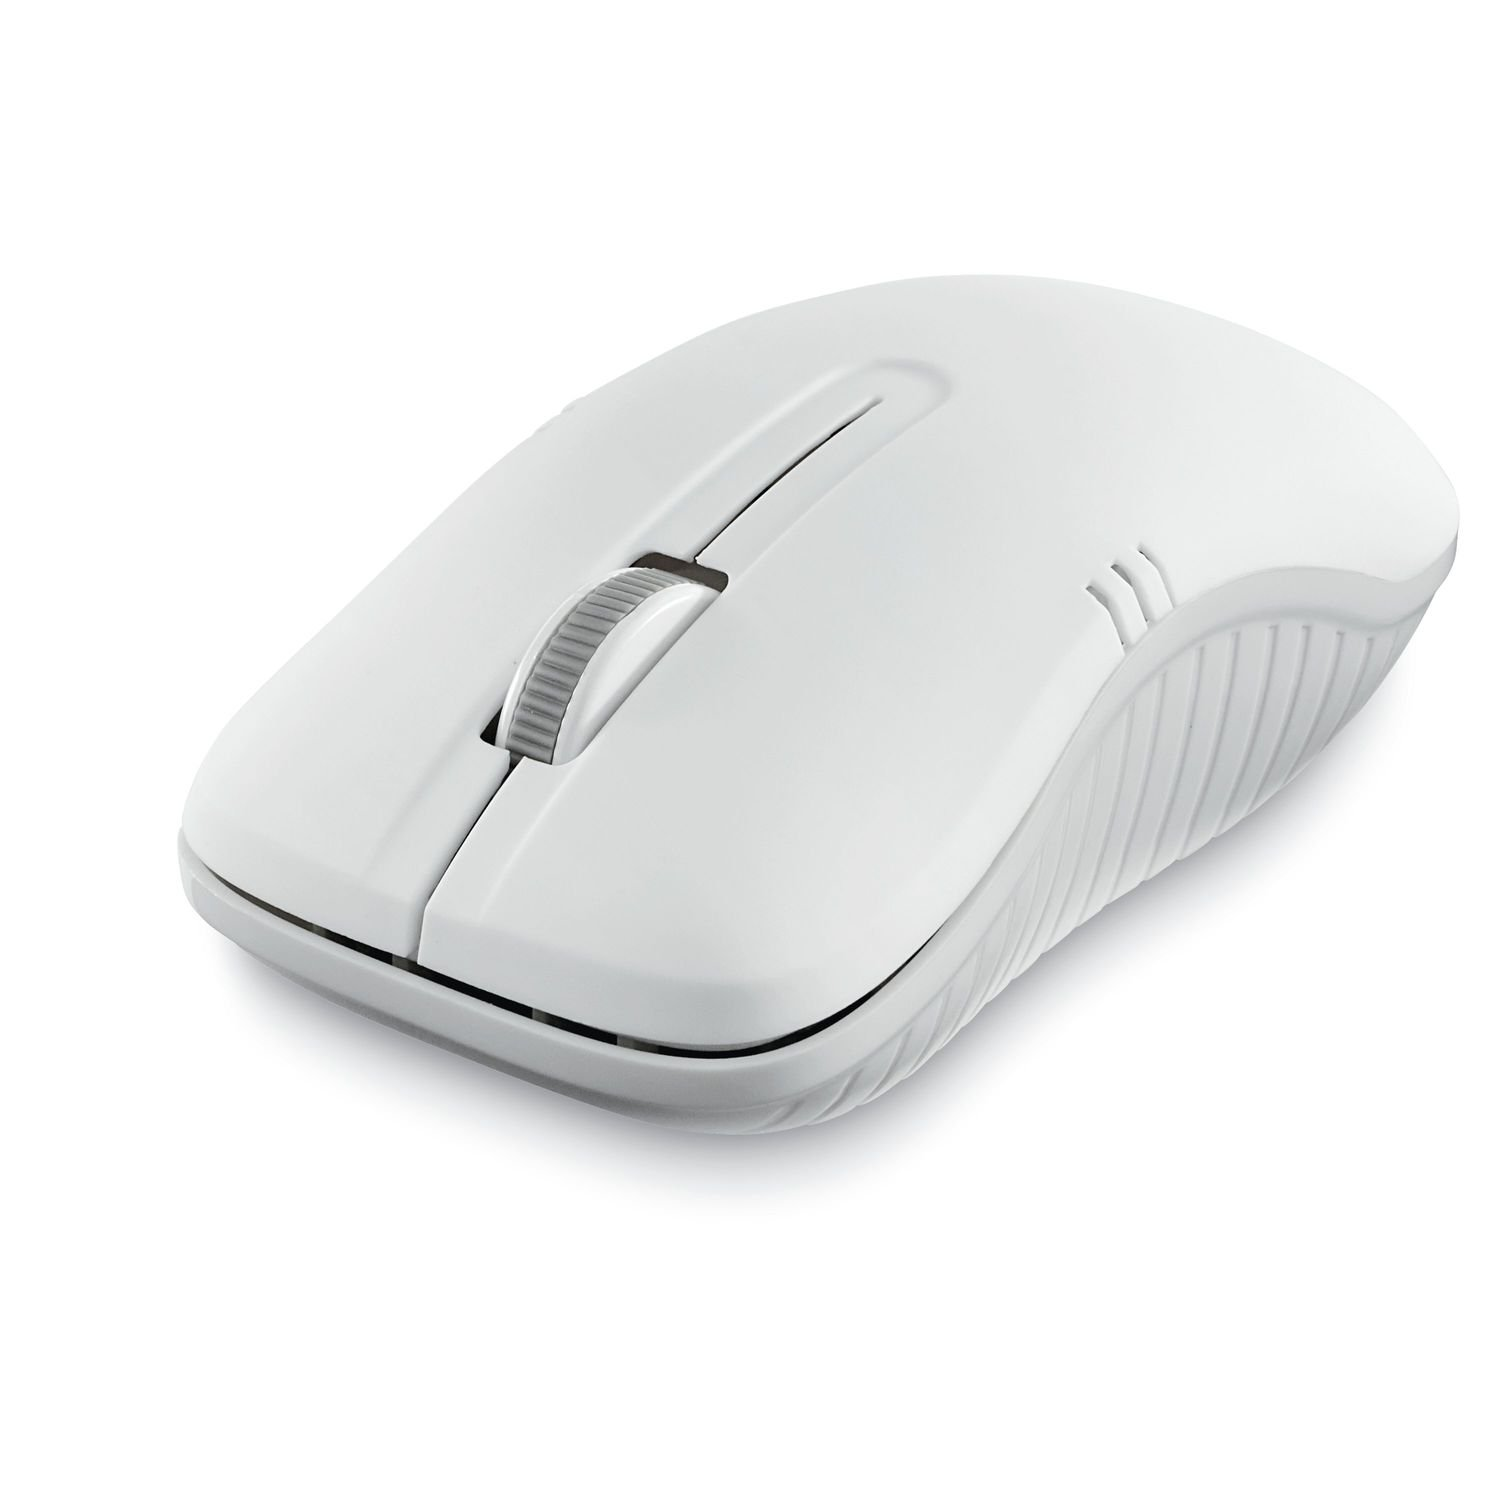 VERBATIM WIRELESS MOUSE WINDOWS VISTA DRIVER DOWNLOAD